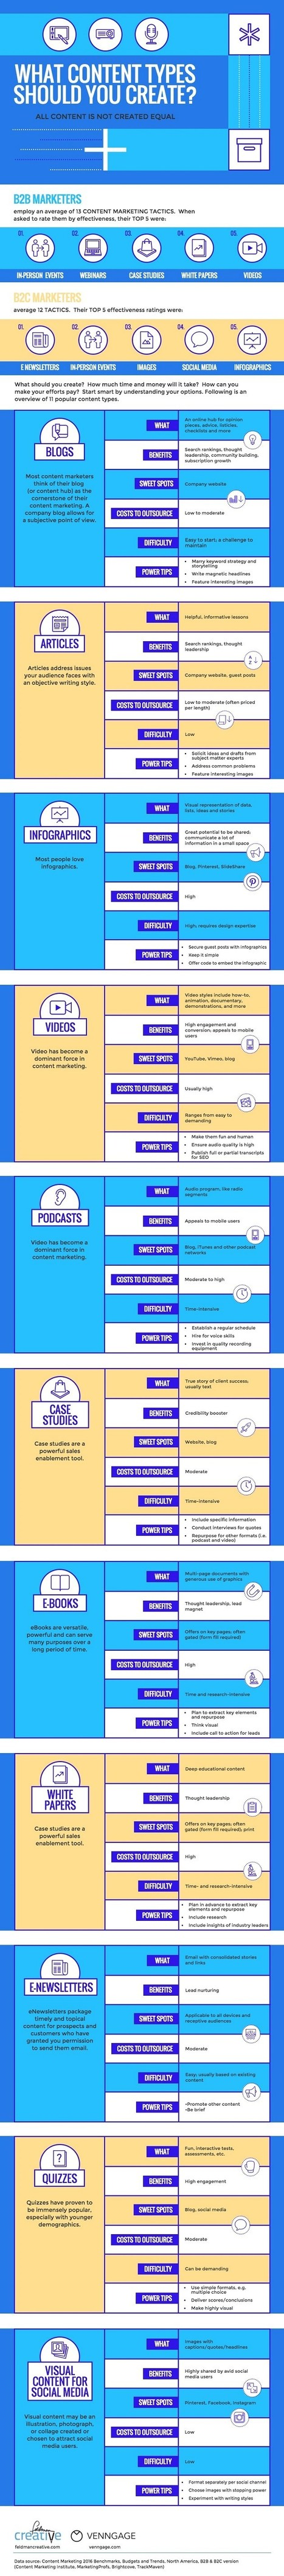 Infographic - What Content Types Should You Create? | Design, social media and web resources | Scoop.it